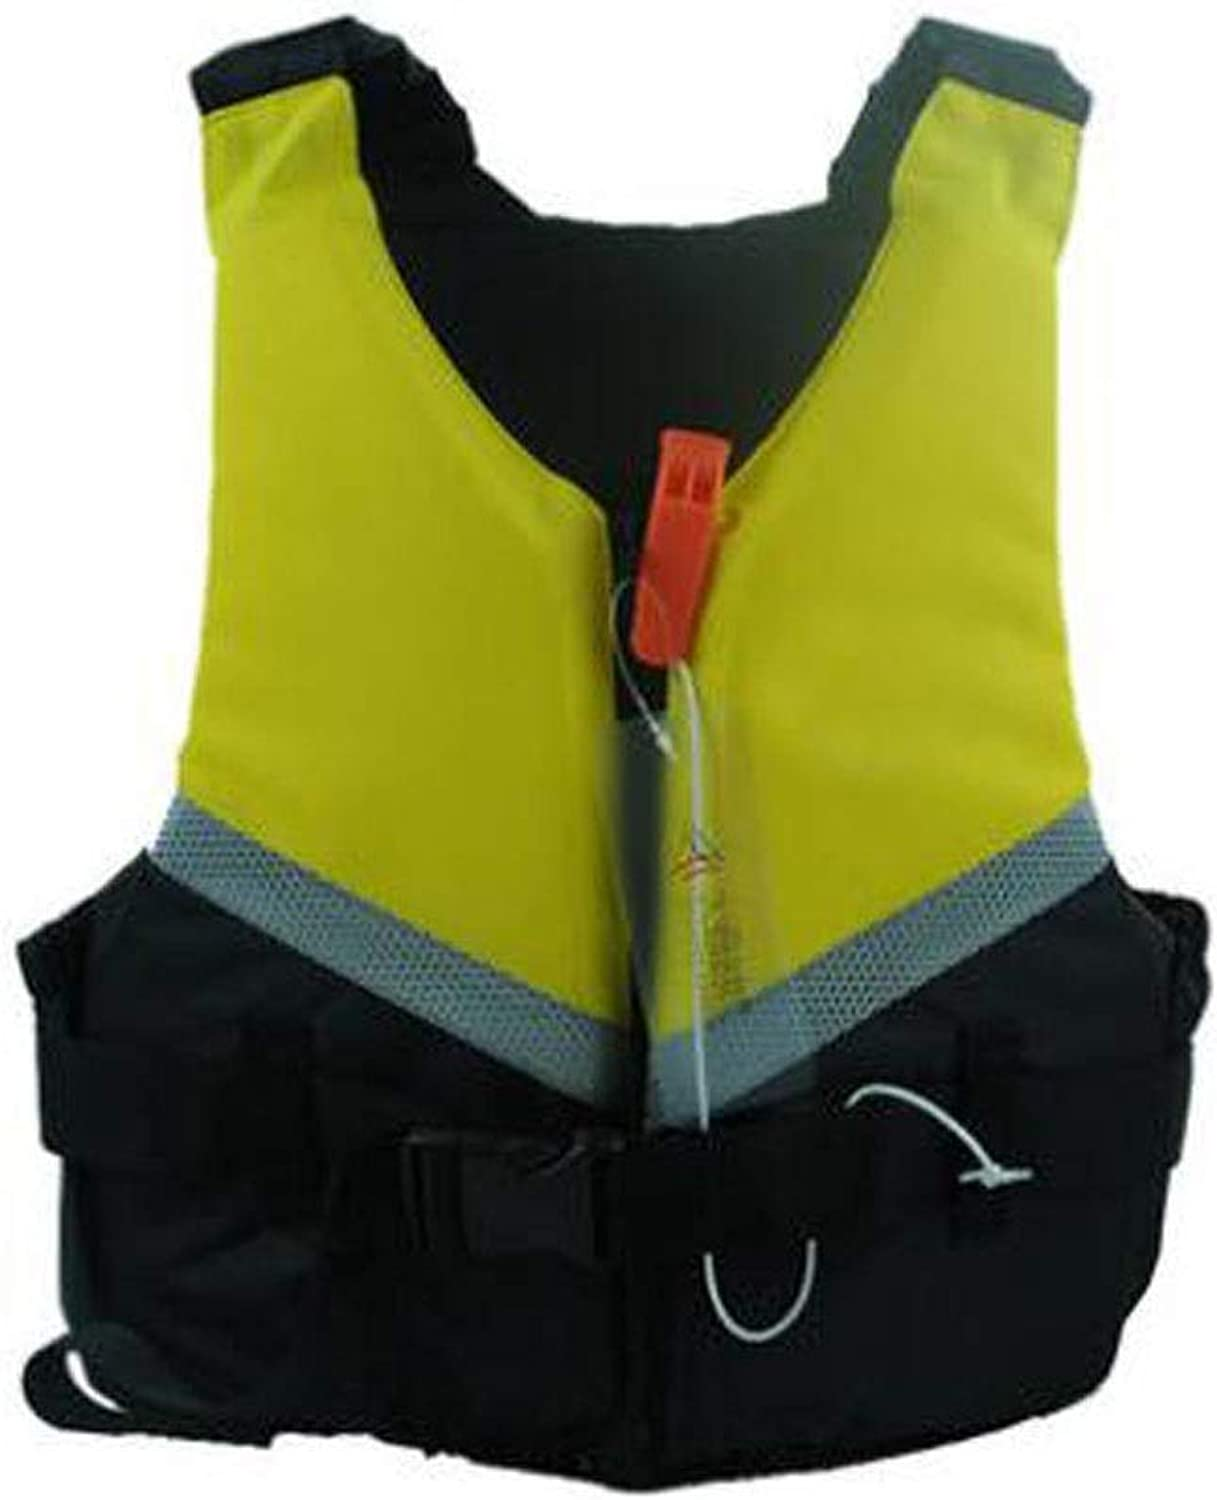 Qiyuezhuangshi Adult Inflatable Swimming Vest Life Jacket for Snorkeling, Outdoor Play, Surfing, Size  L, M, S, XL, XXL, color  blueee, Pink, Yellow Environmental Predection